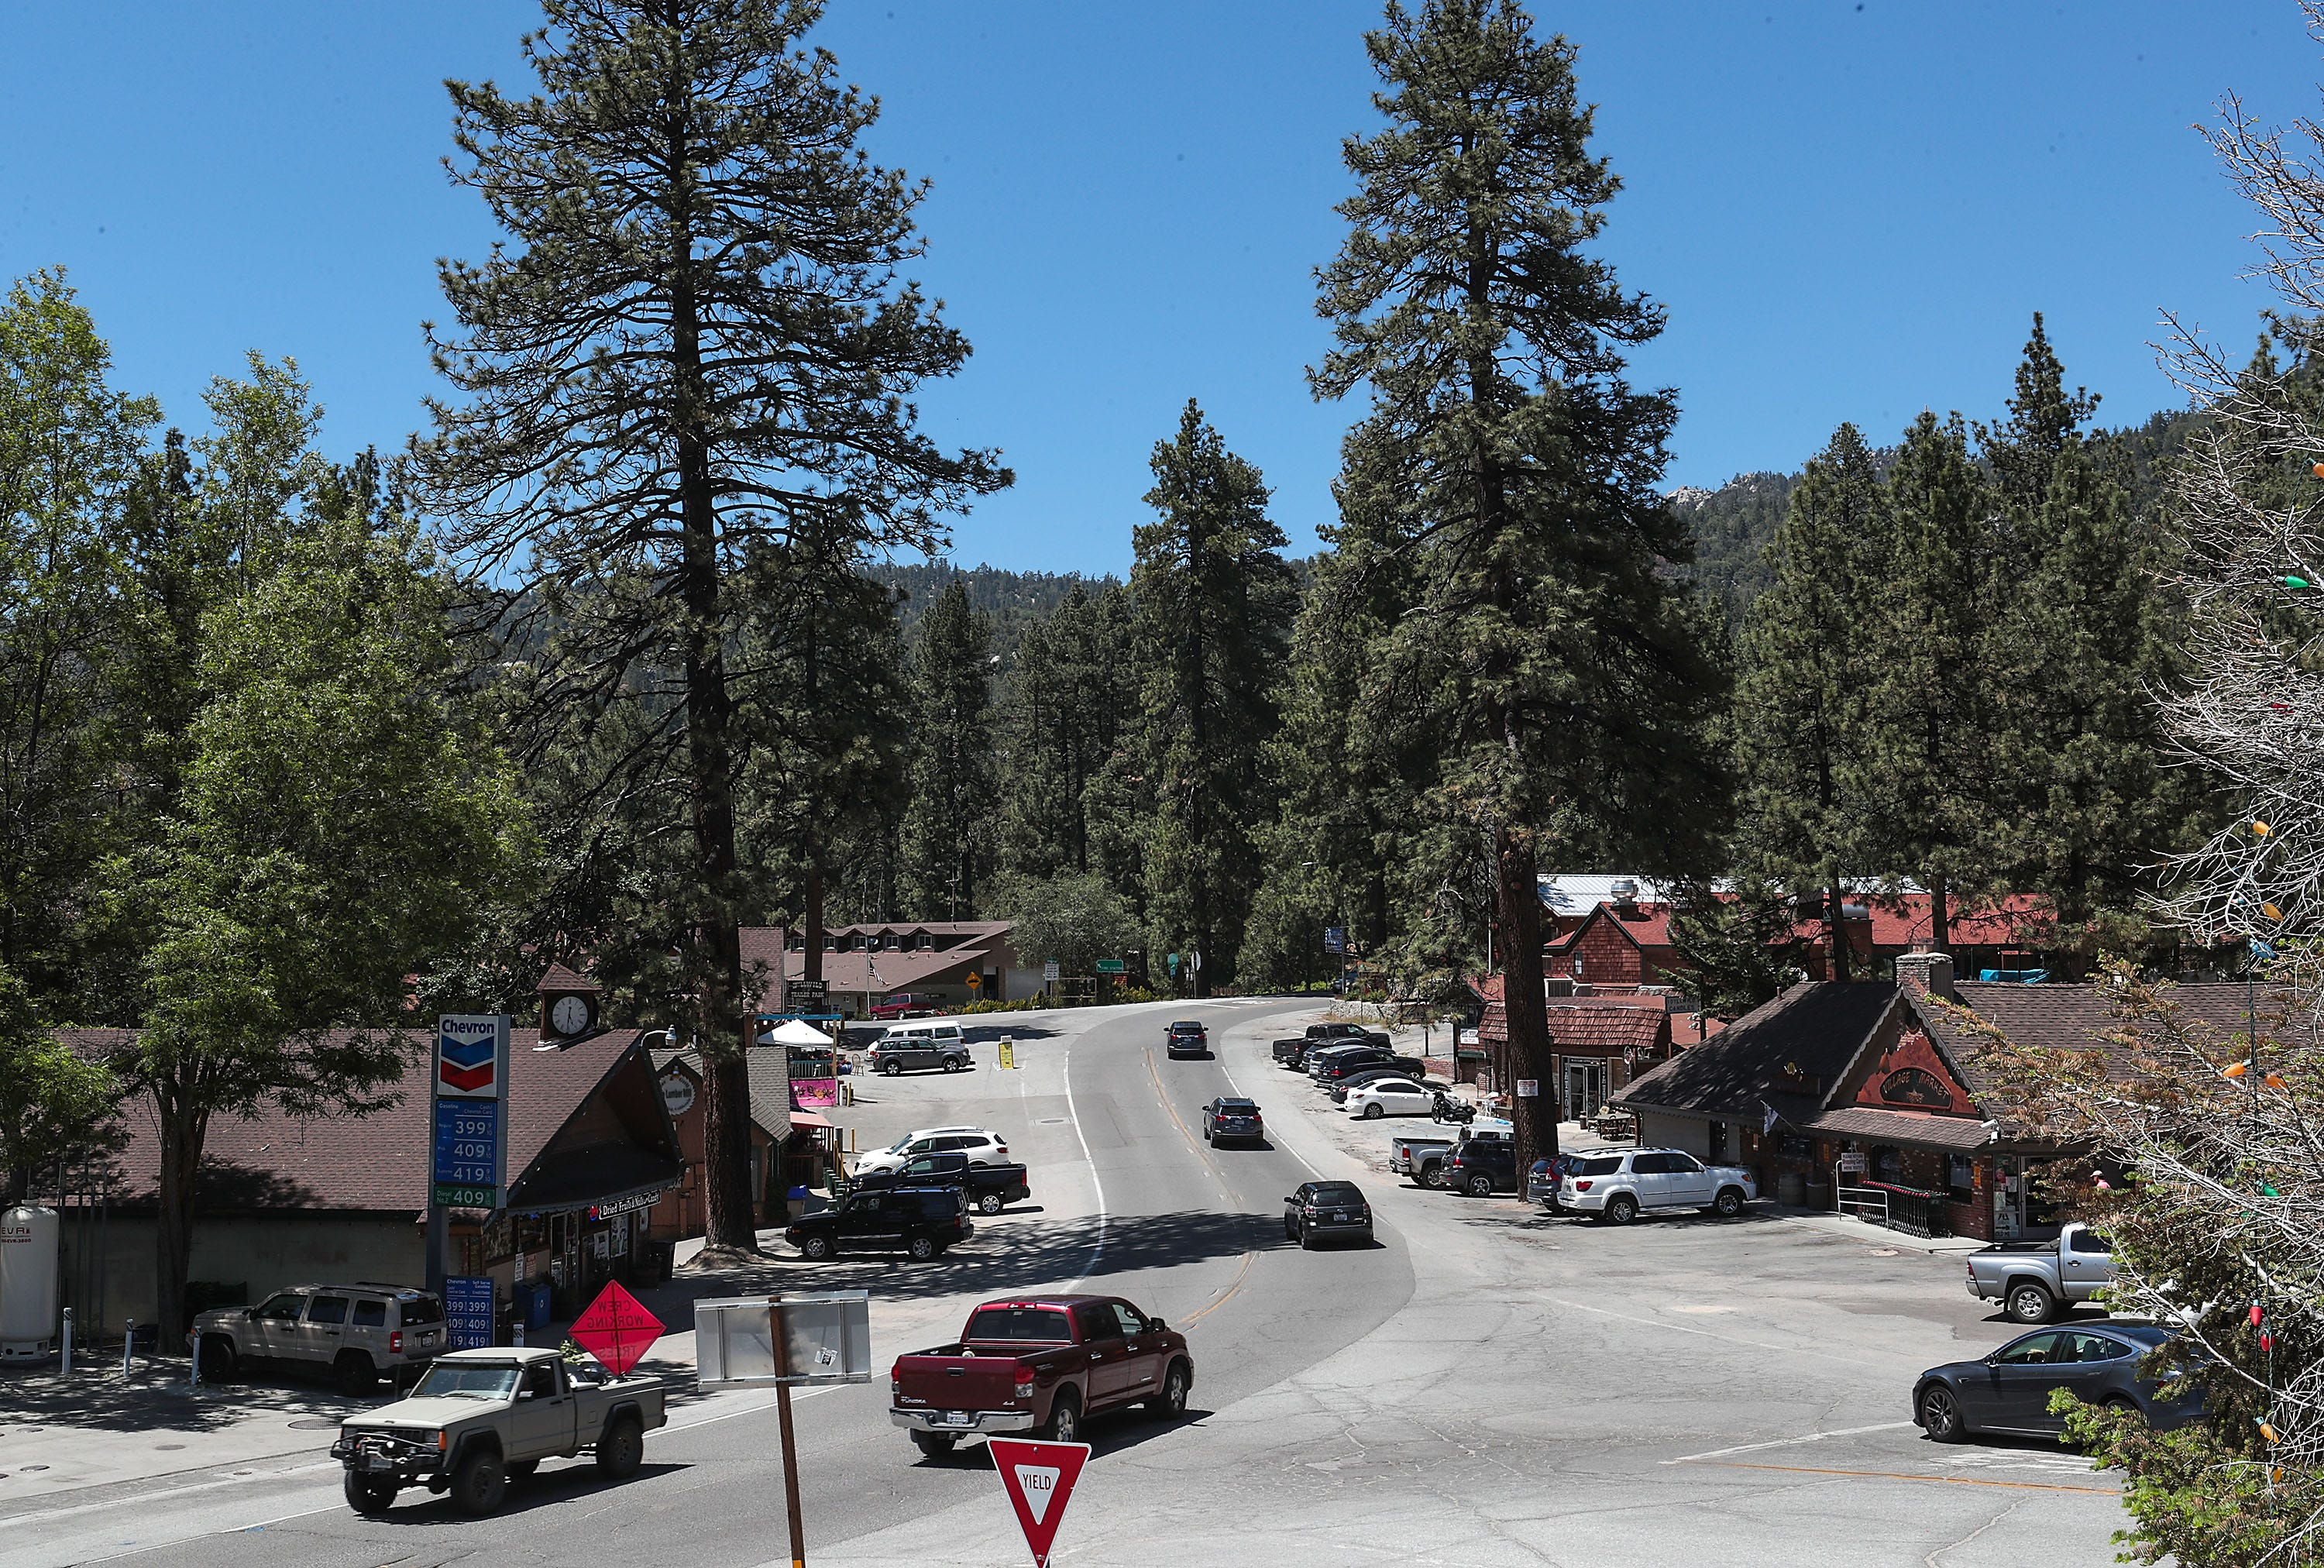 Highway 243 in Idyllwild, Calif. is the only paved road in and out of the mountain town, June 13, 2019.